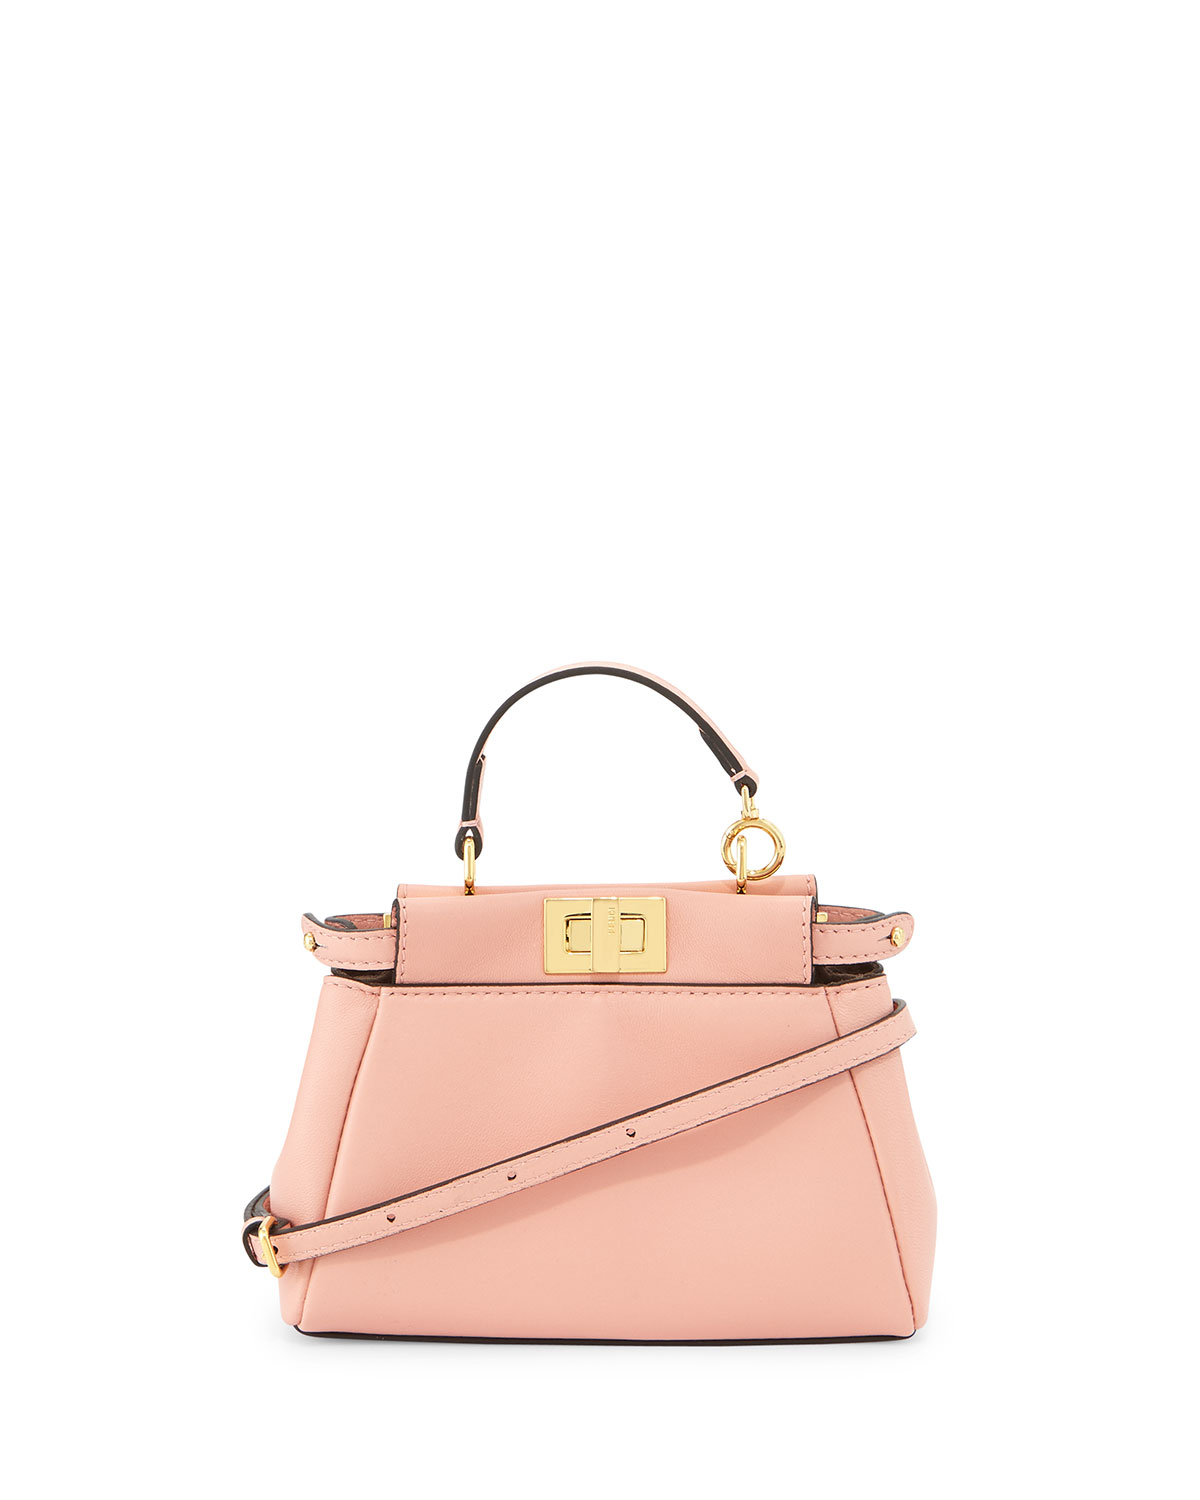 bc642c32f2e7 shop fendi crossbody bag vintage 4997b 6d67b  spain lyst fendi peekaboo  micro satchel bag in pink 71930 8abd7